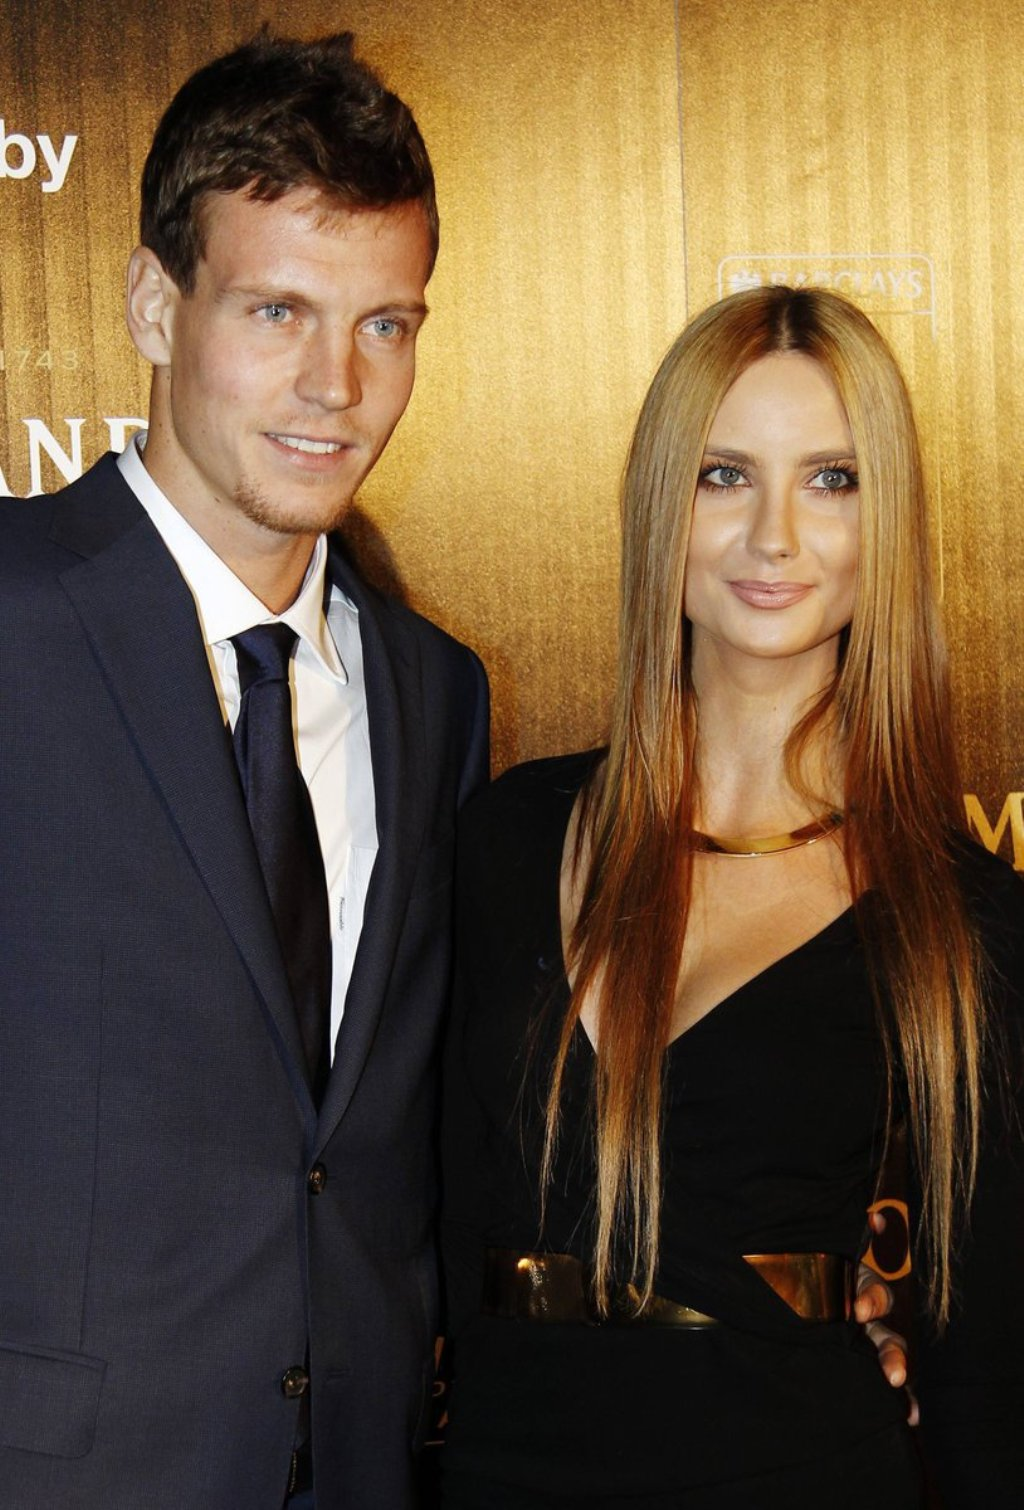 Tomas Berdych with beautiful, Girlfriend Esther Satorova